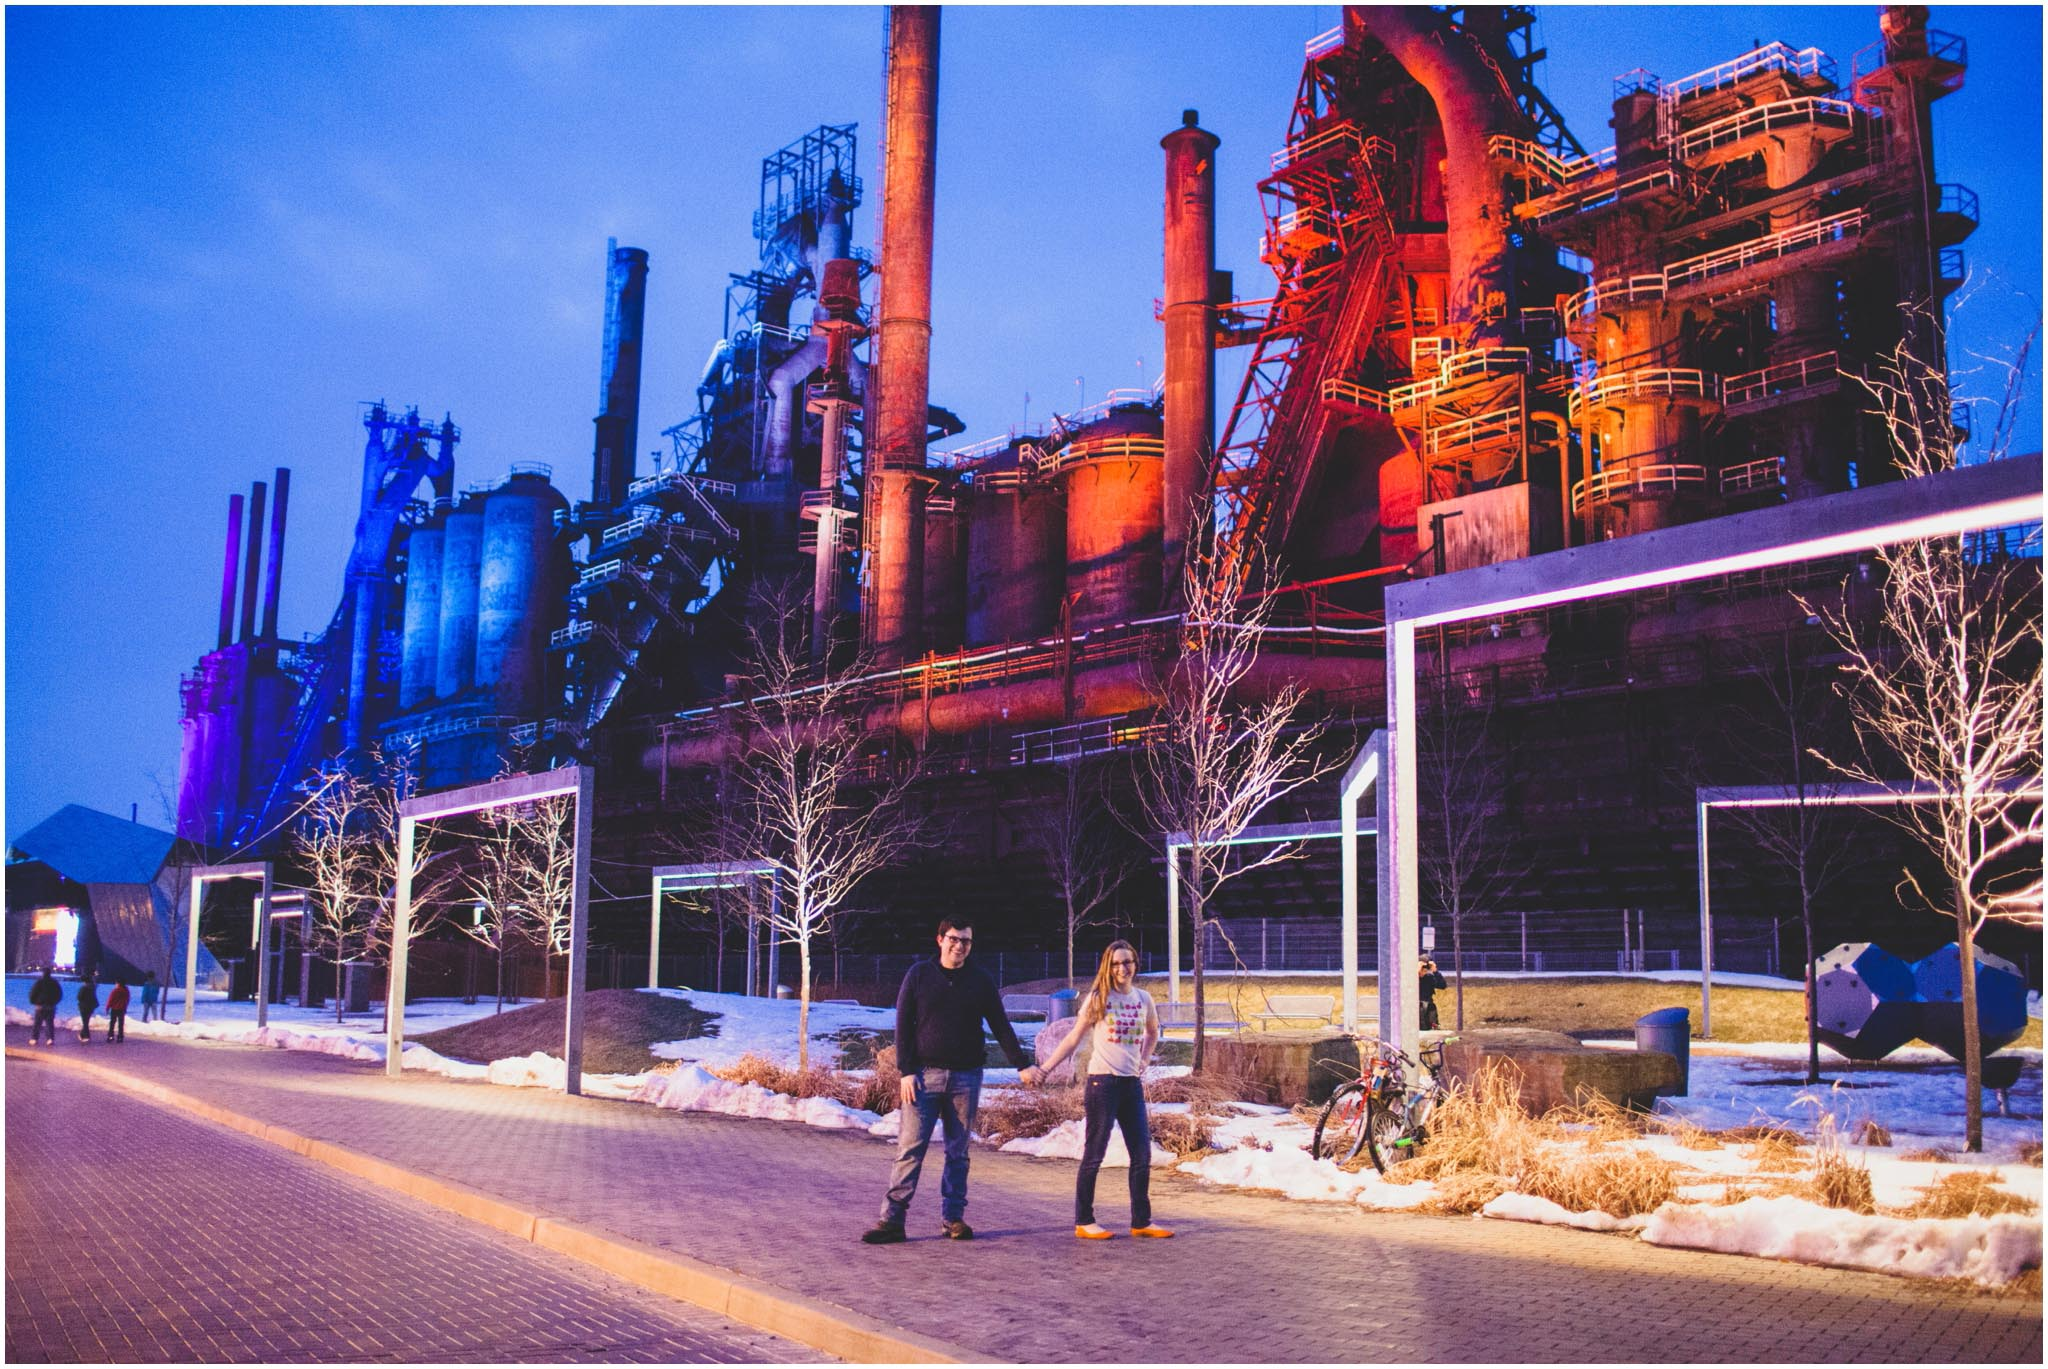 Bethlehem Steelstacks, wedding, Lehigh Valley